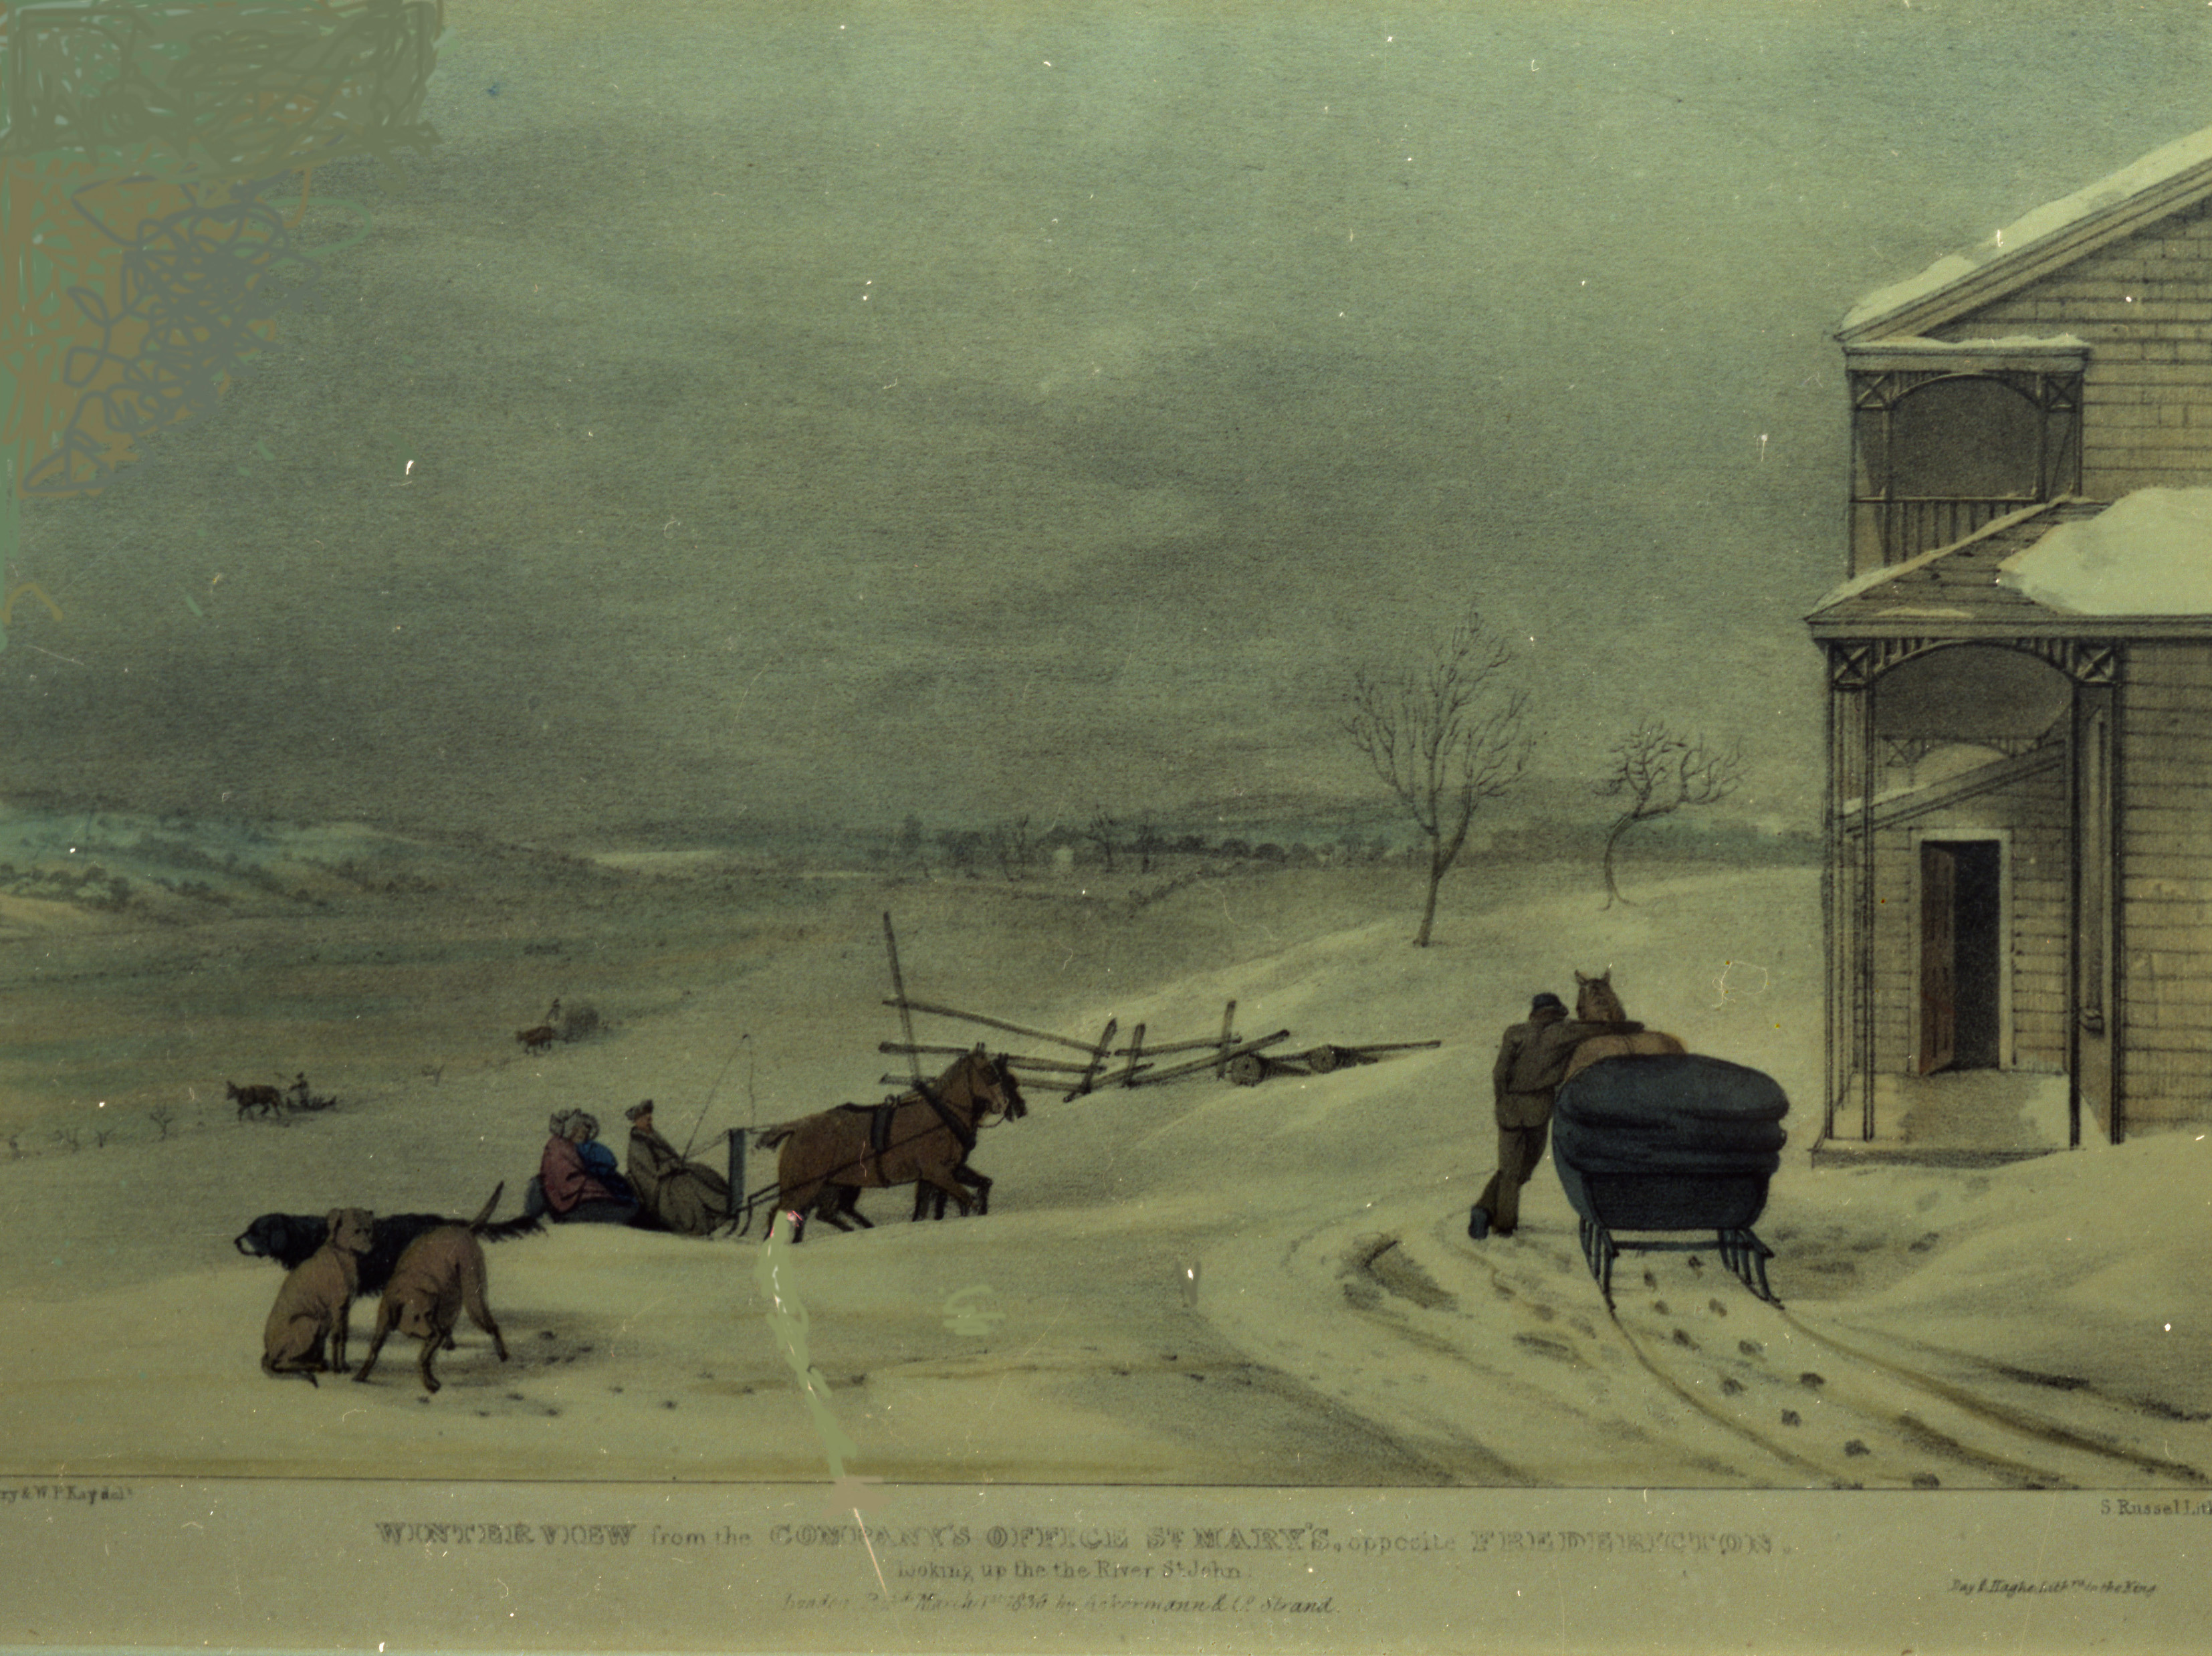 Winter View from the Company's Office, St. Mary's 1836_BAG